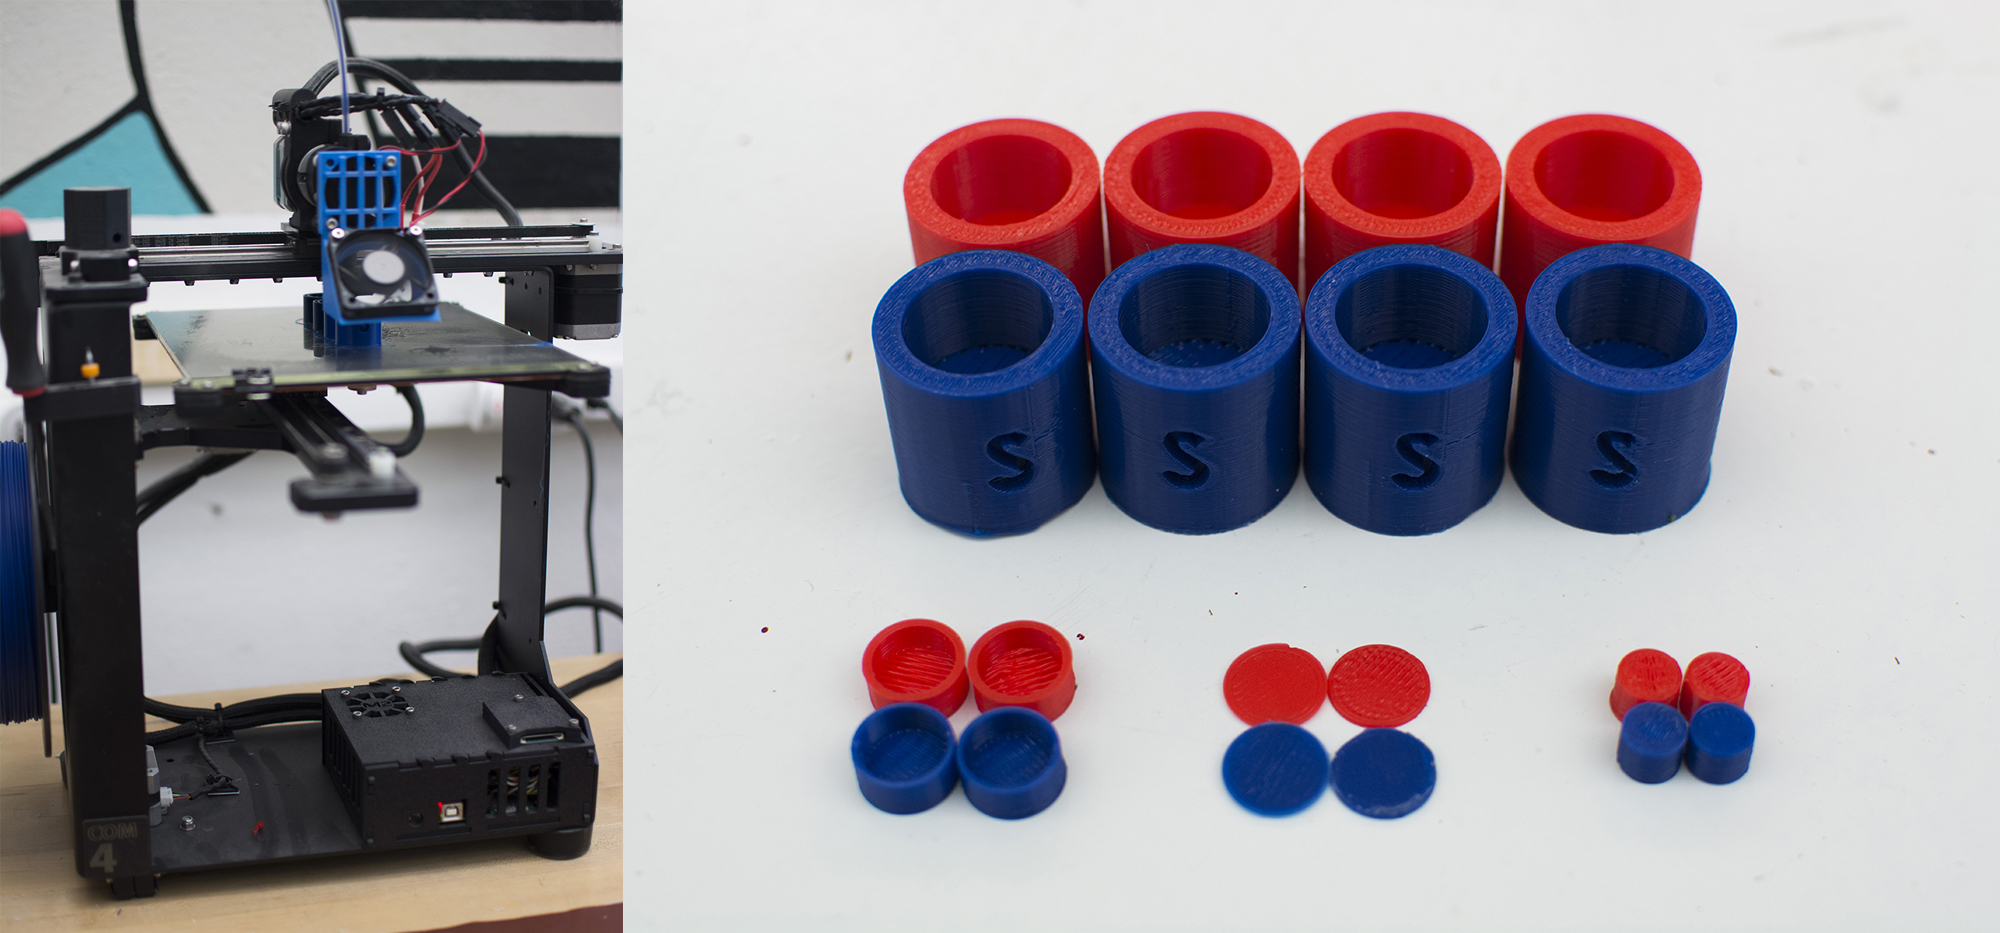 3D Printing 4 controllers (2 for backup)